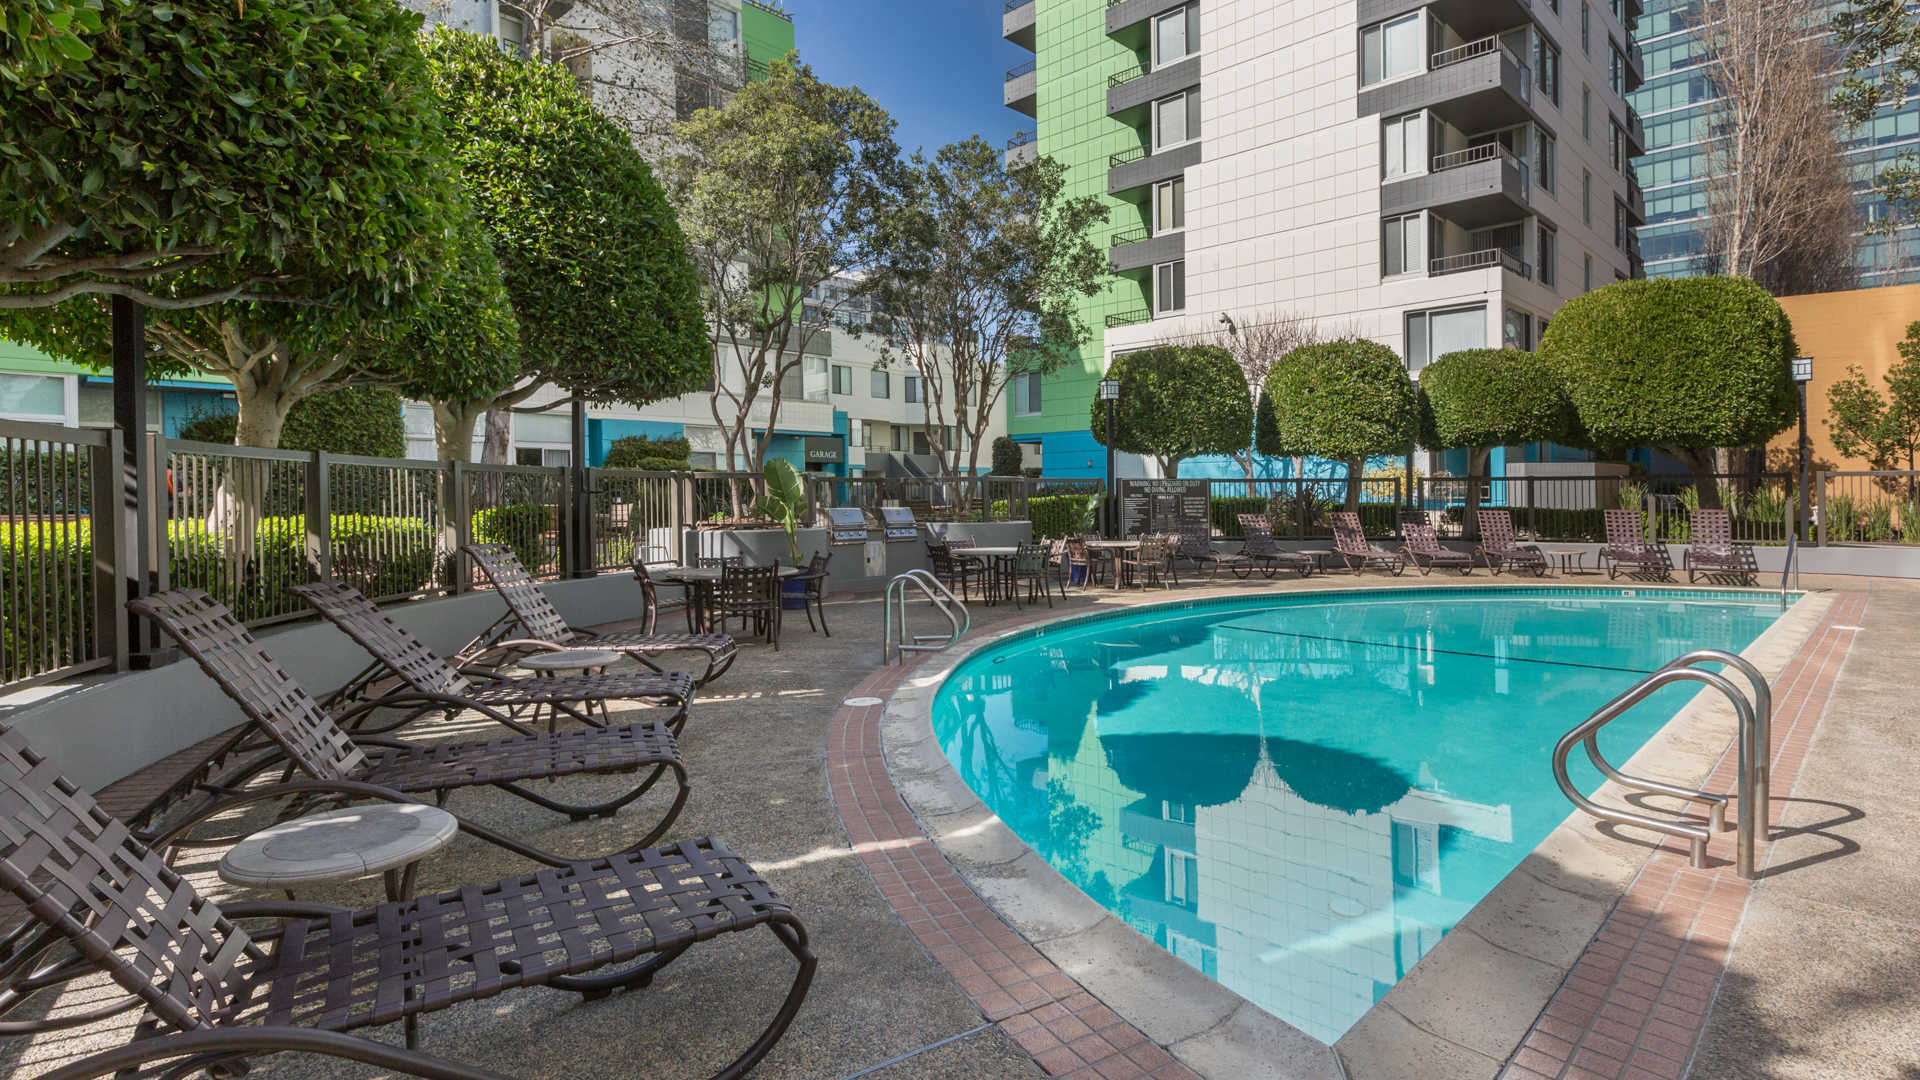 SoMa Square Apartments Reviews In SoMa One Saint Francis Pl - Soma apartments sf